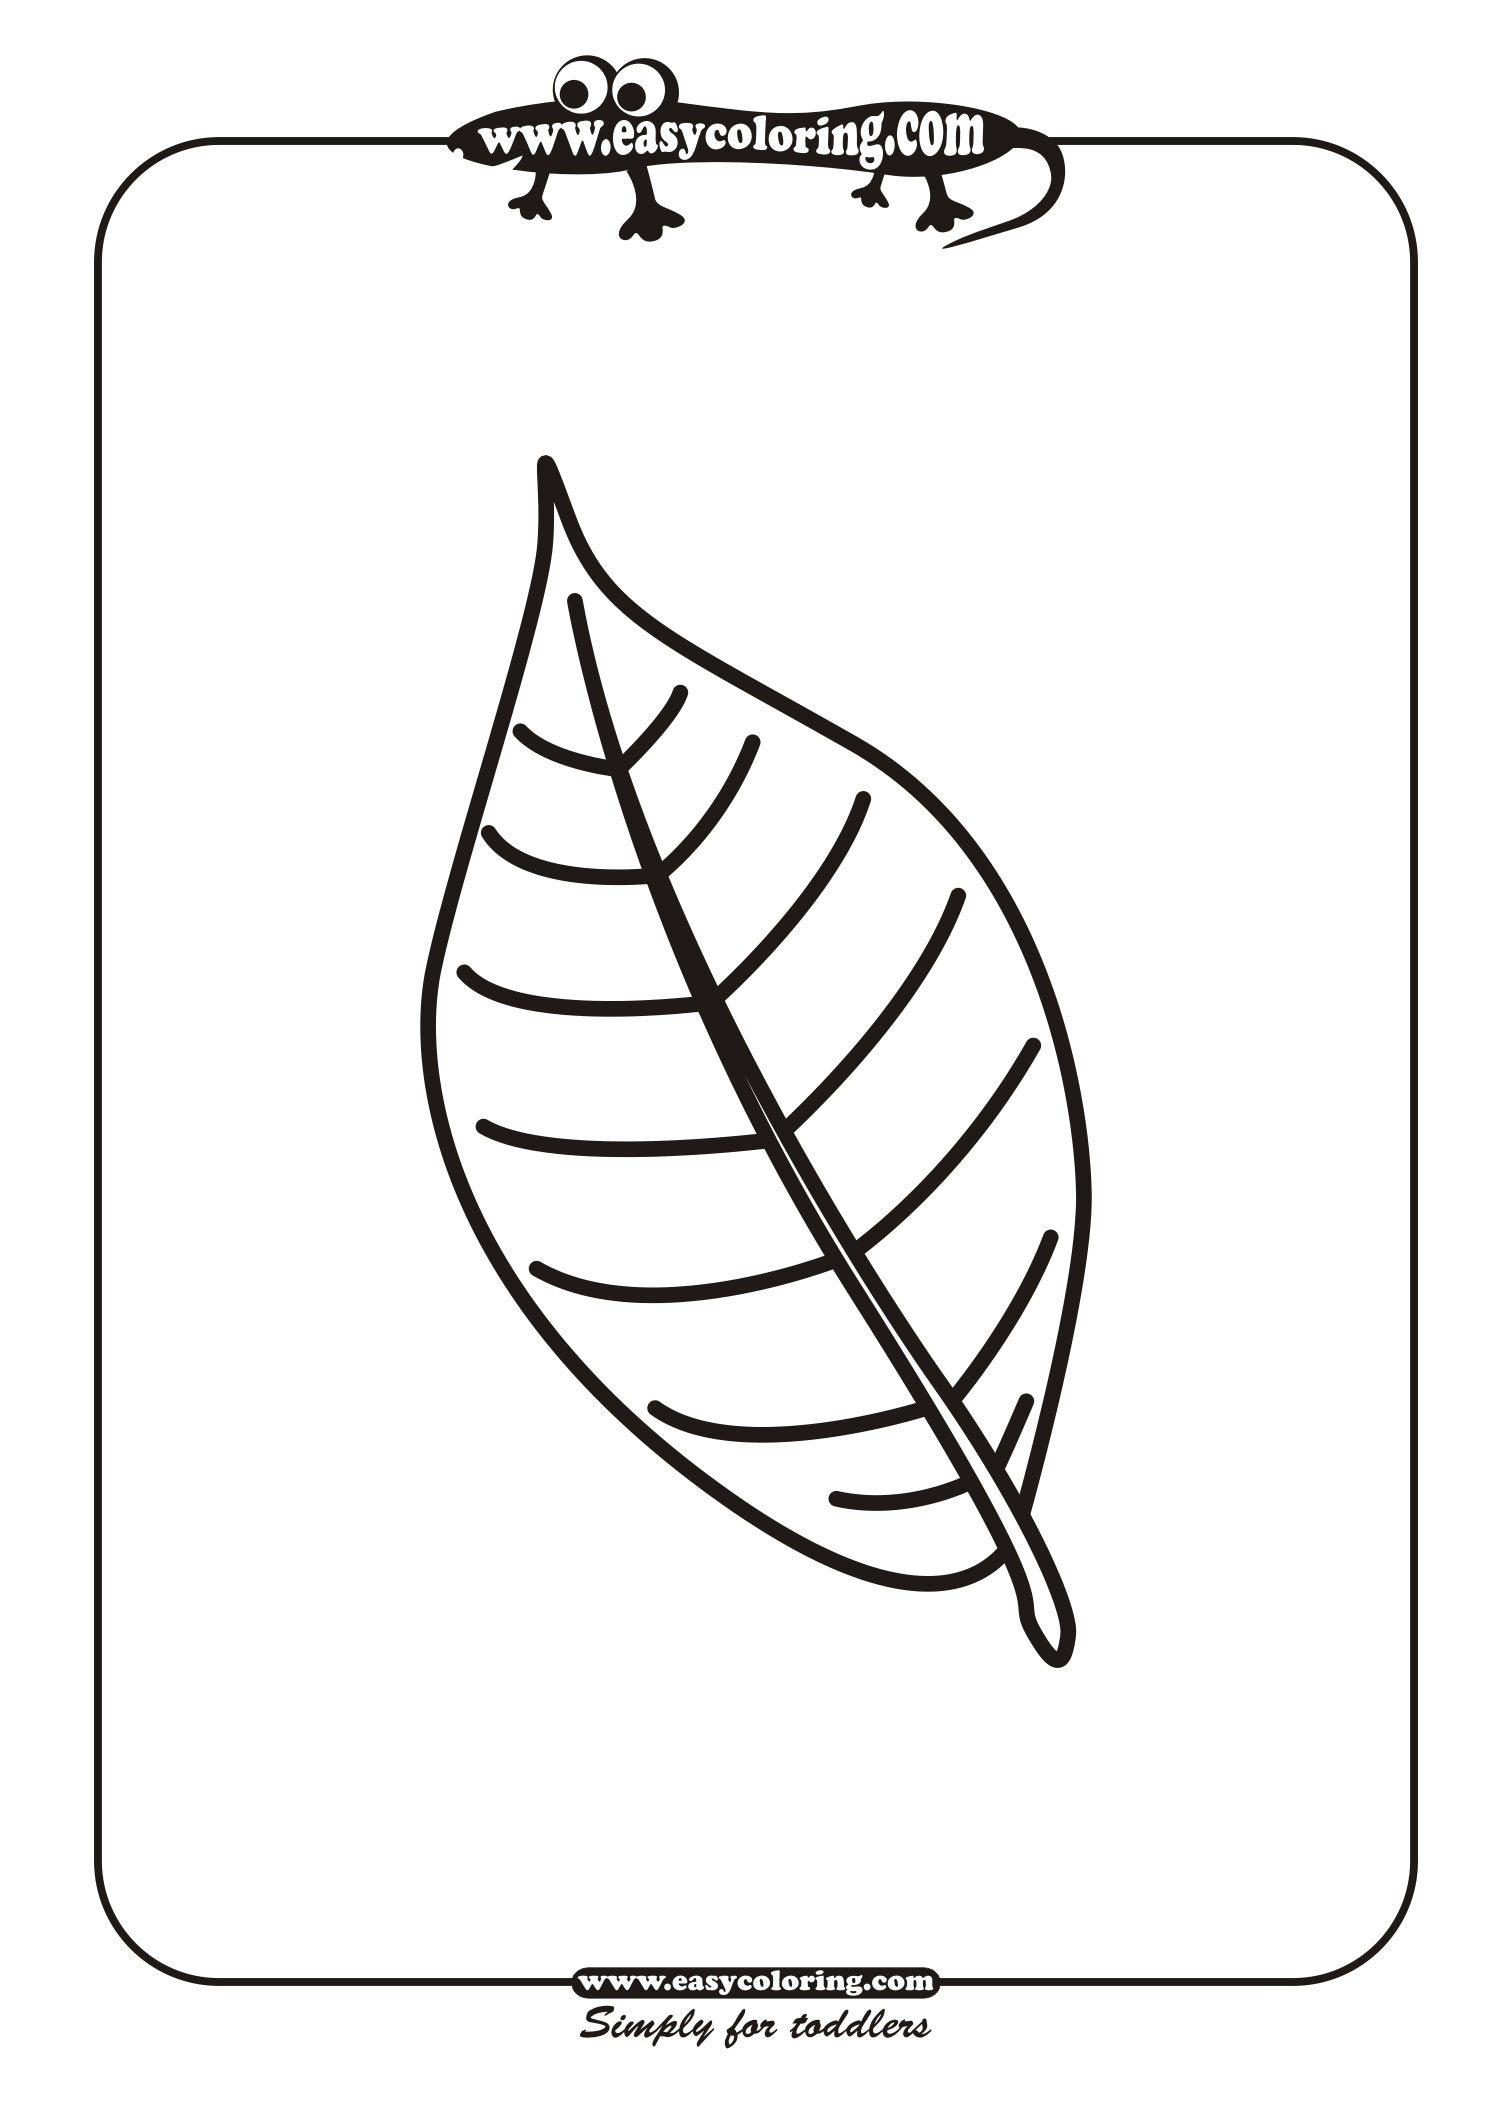 leaf two simple leafs easy coloring pages for toddlers